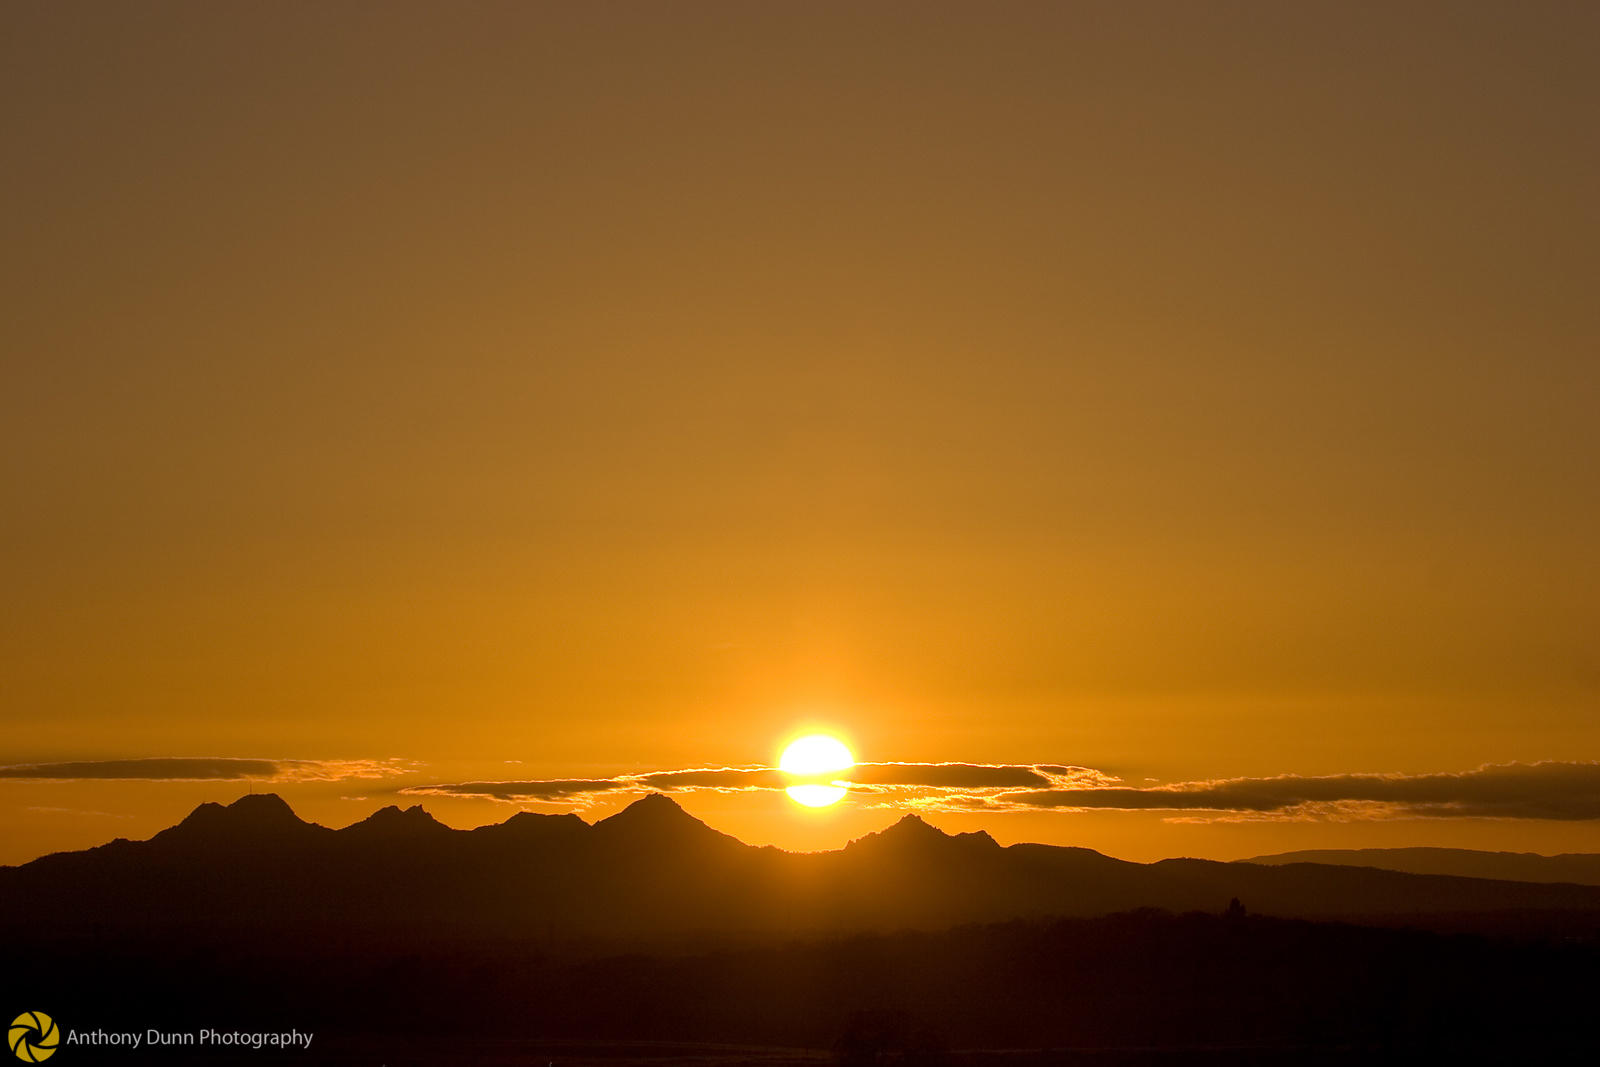 Sunset over the Sutter Buttes #2